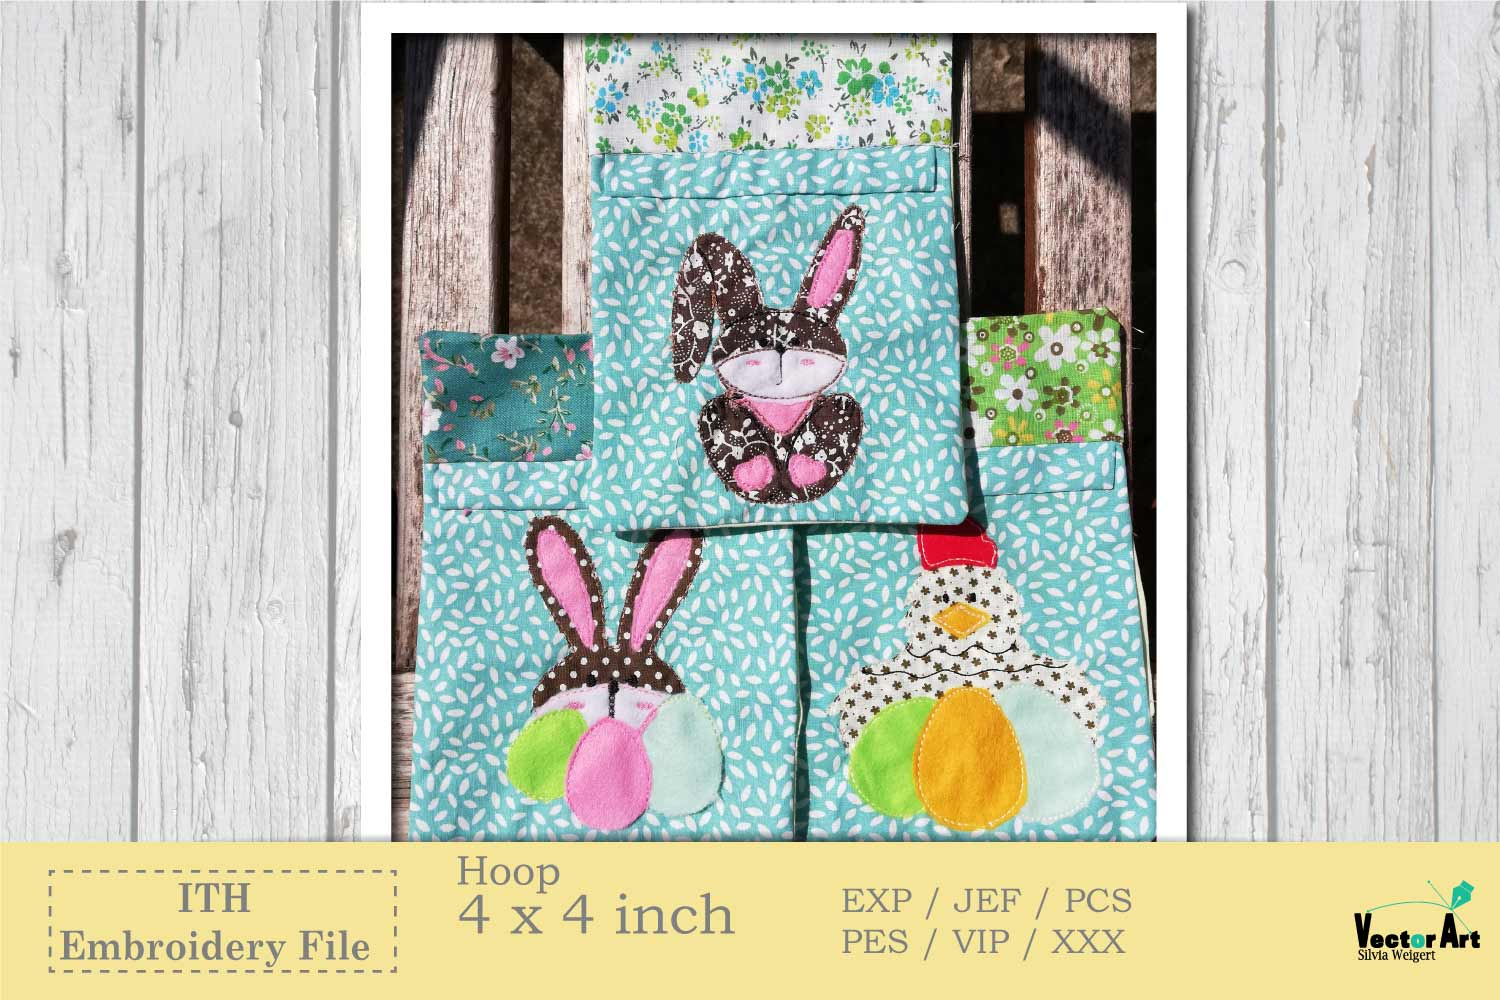 ITH Easter Bundle - Machine Embroidery Files - 10 Projects example image 3